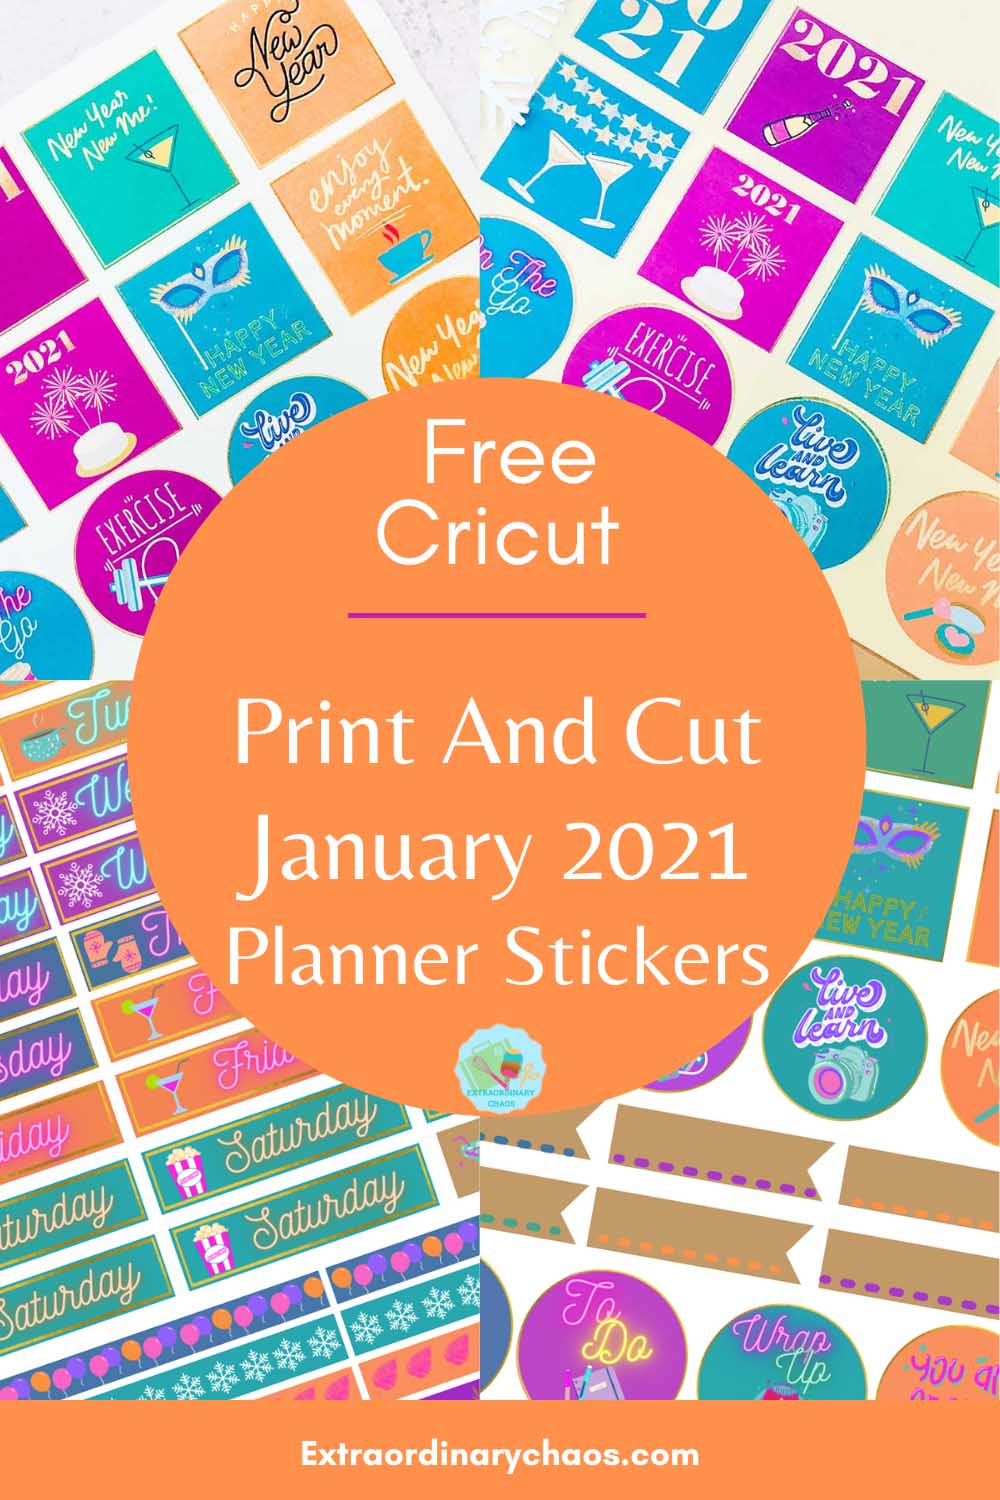 Free Cricut Print and cut January 2021Planner Stickers